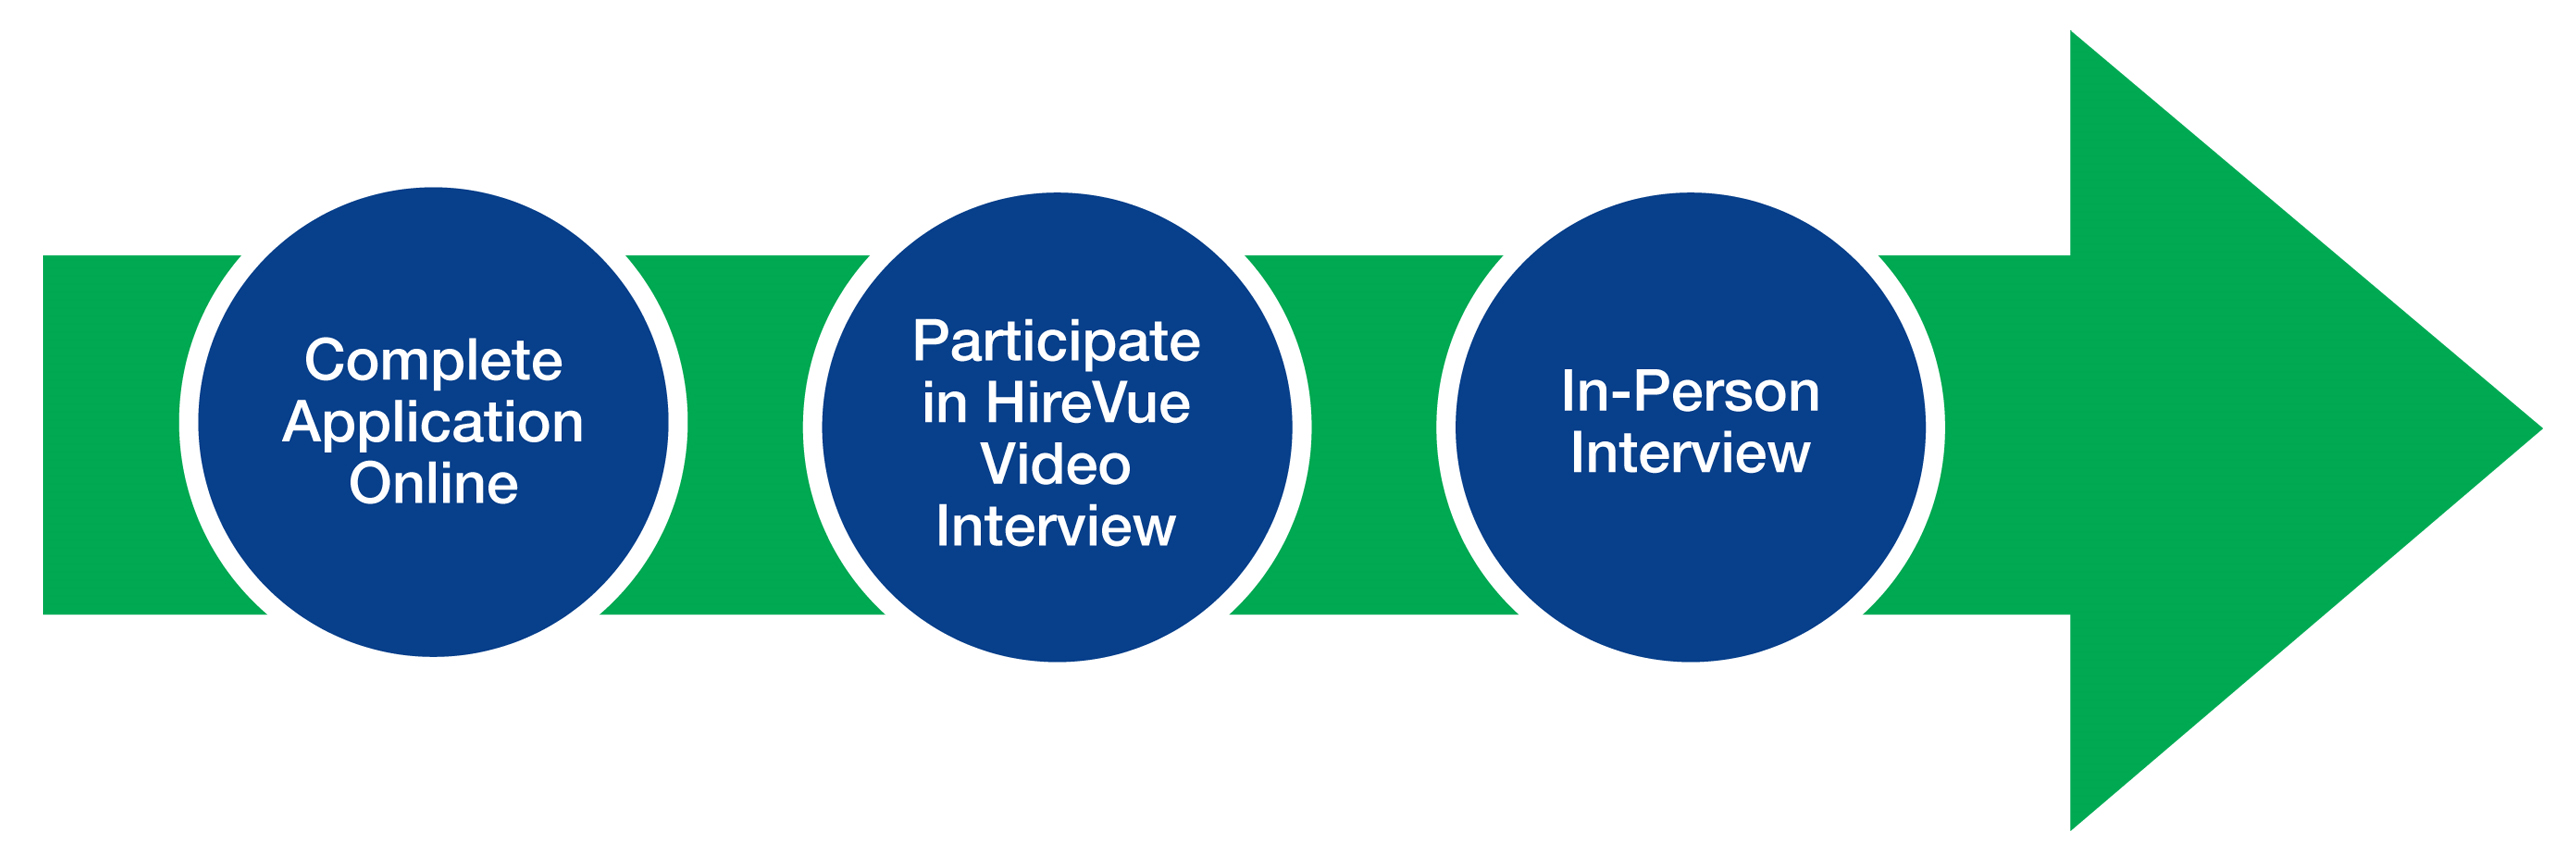 Complete Application Online. Participate in HireVue Video Interview, In-Person Interview